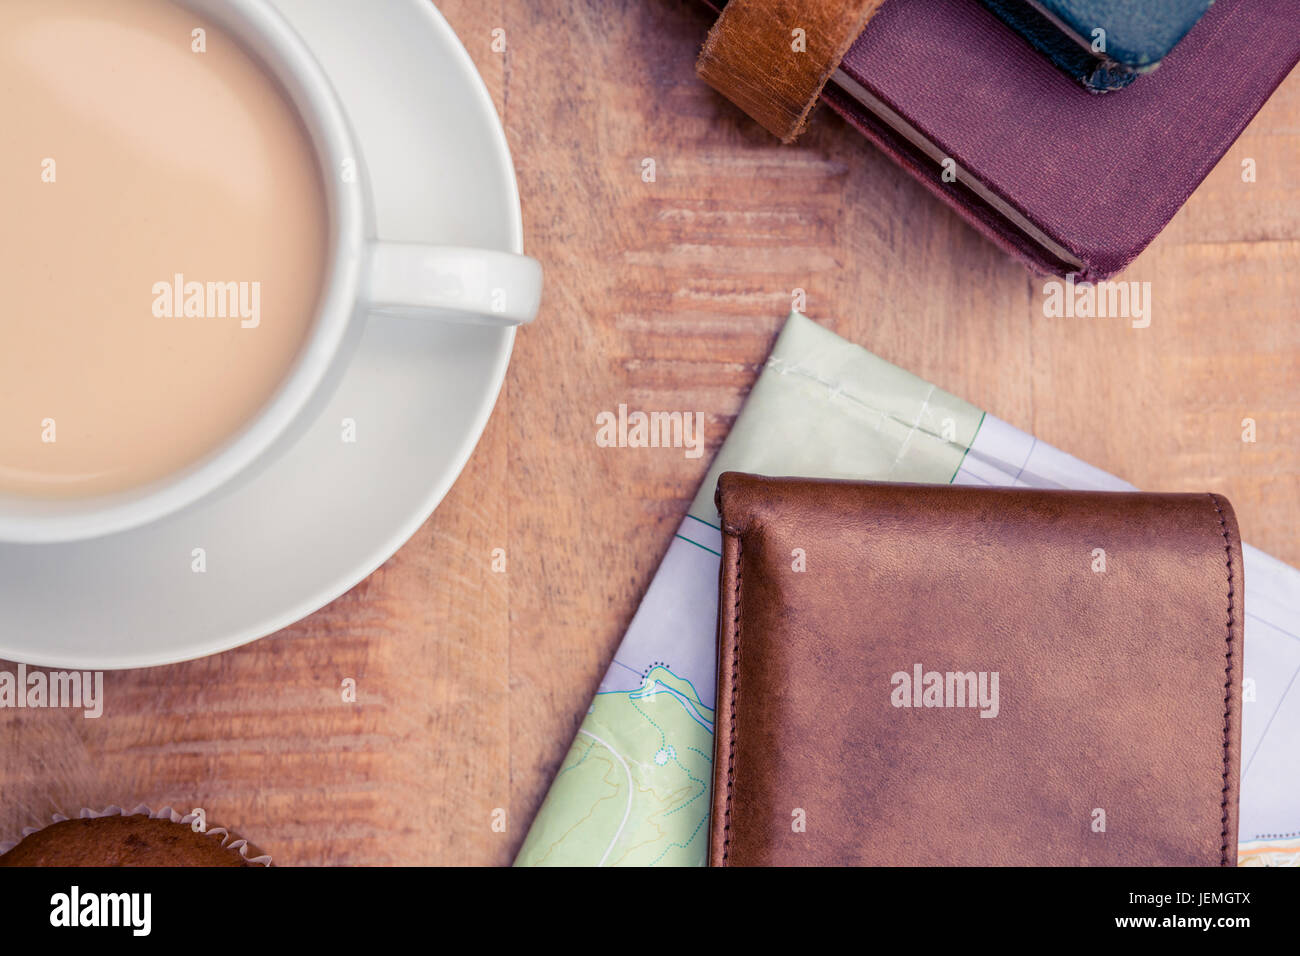 Coffee with wallet and diaries - Stock Image